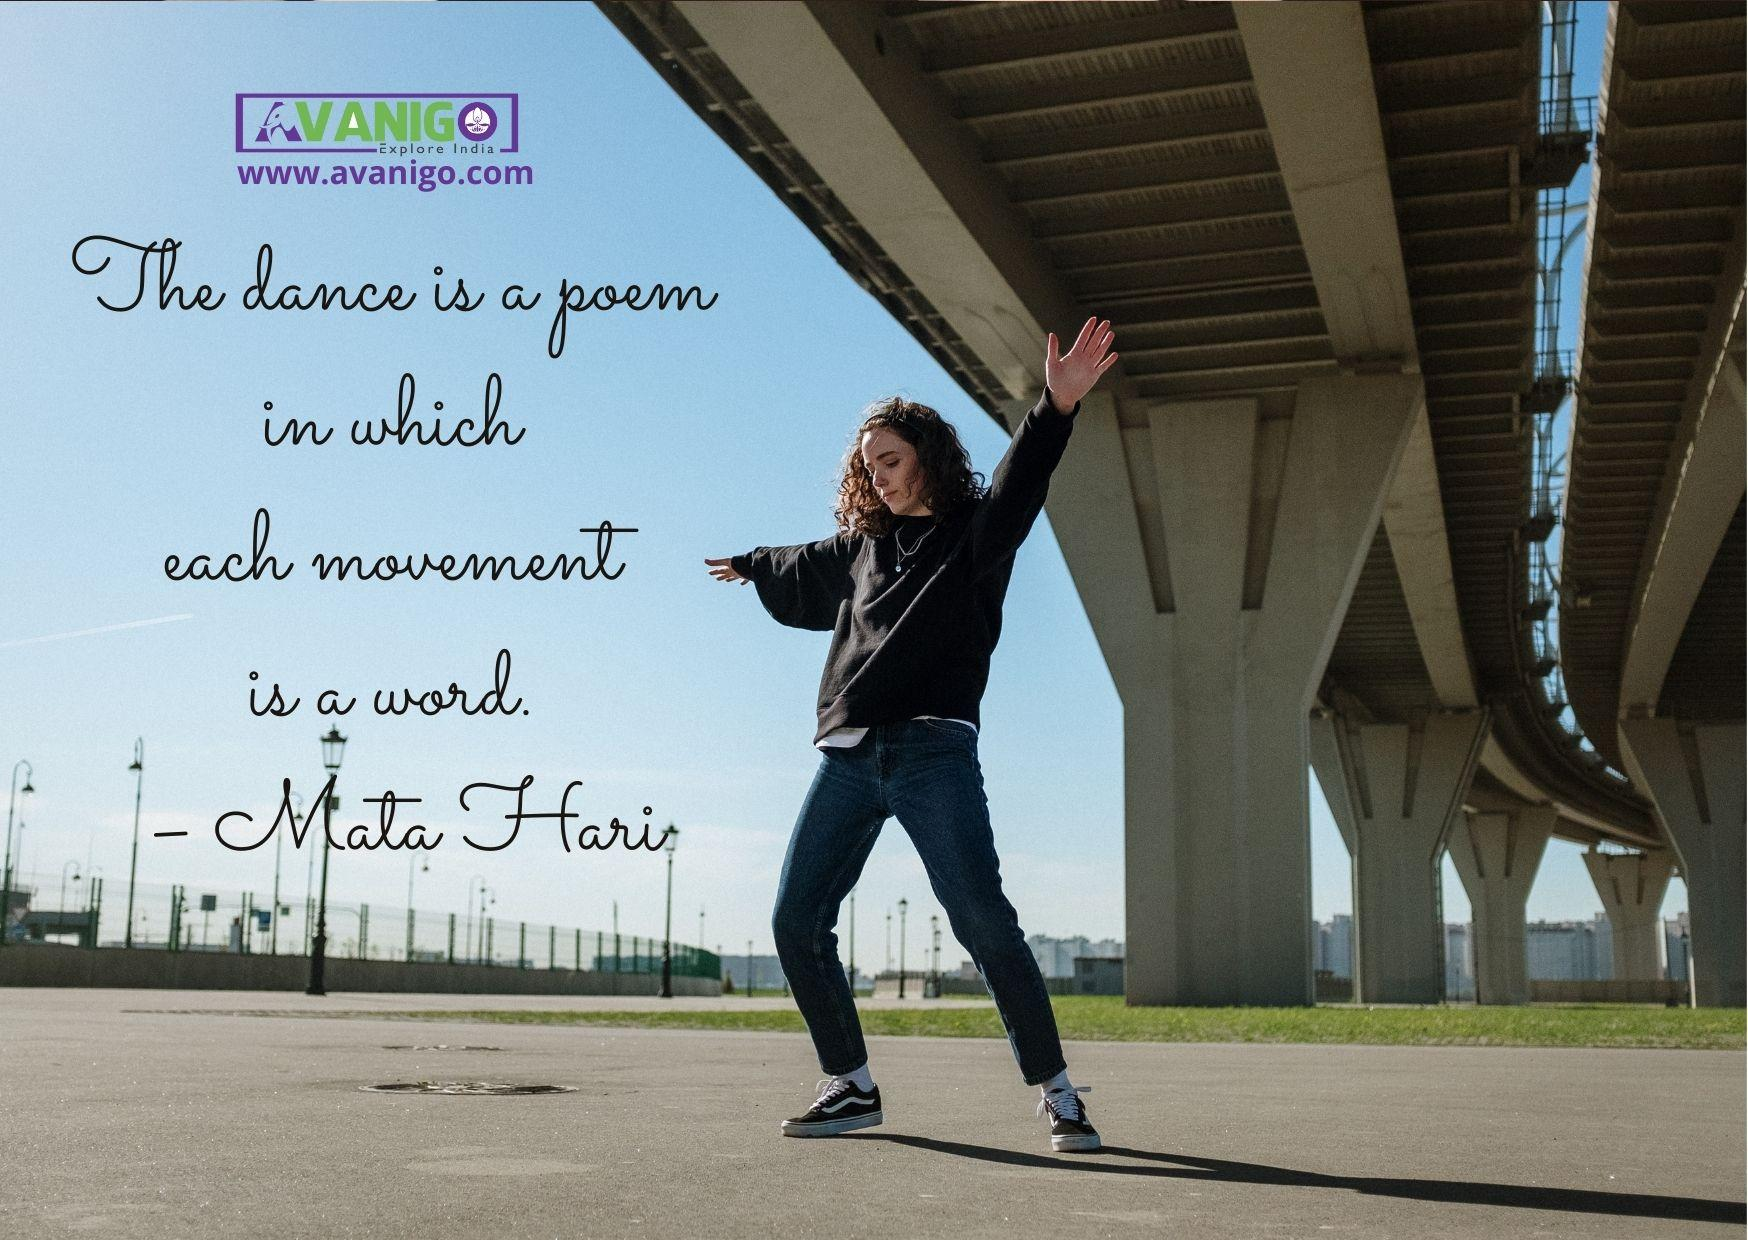 The dance is a poem in which each movement is a word.